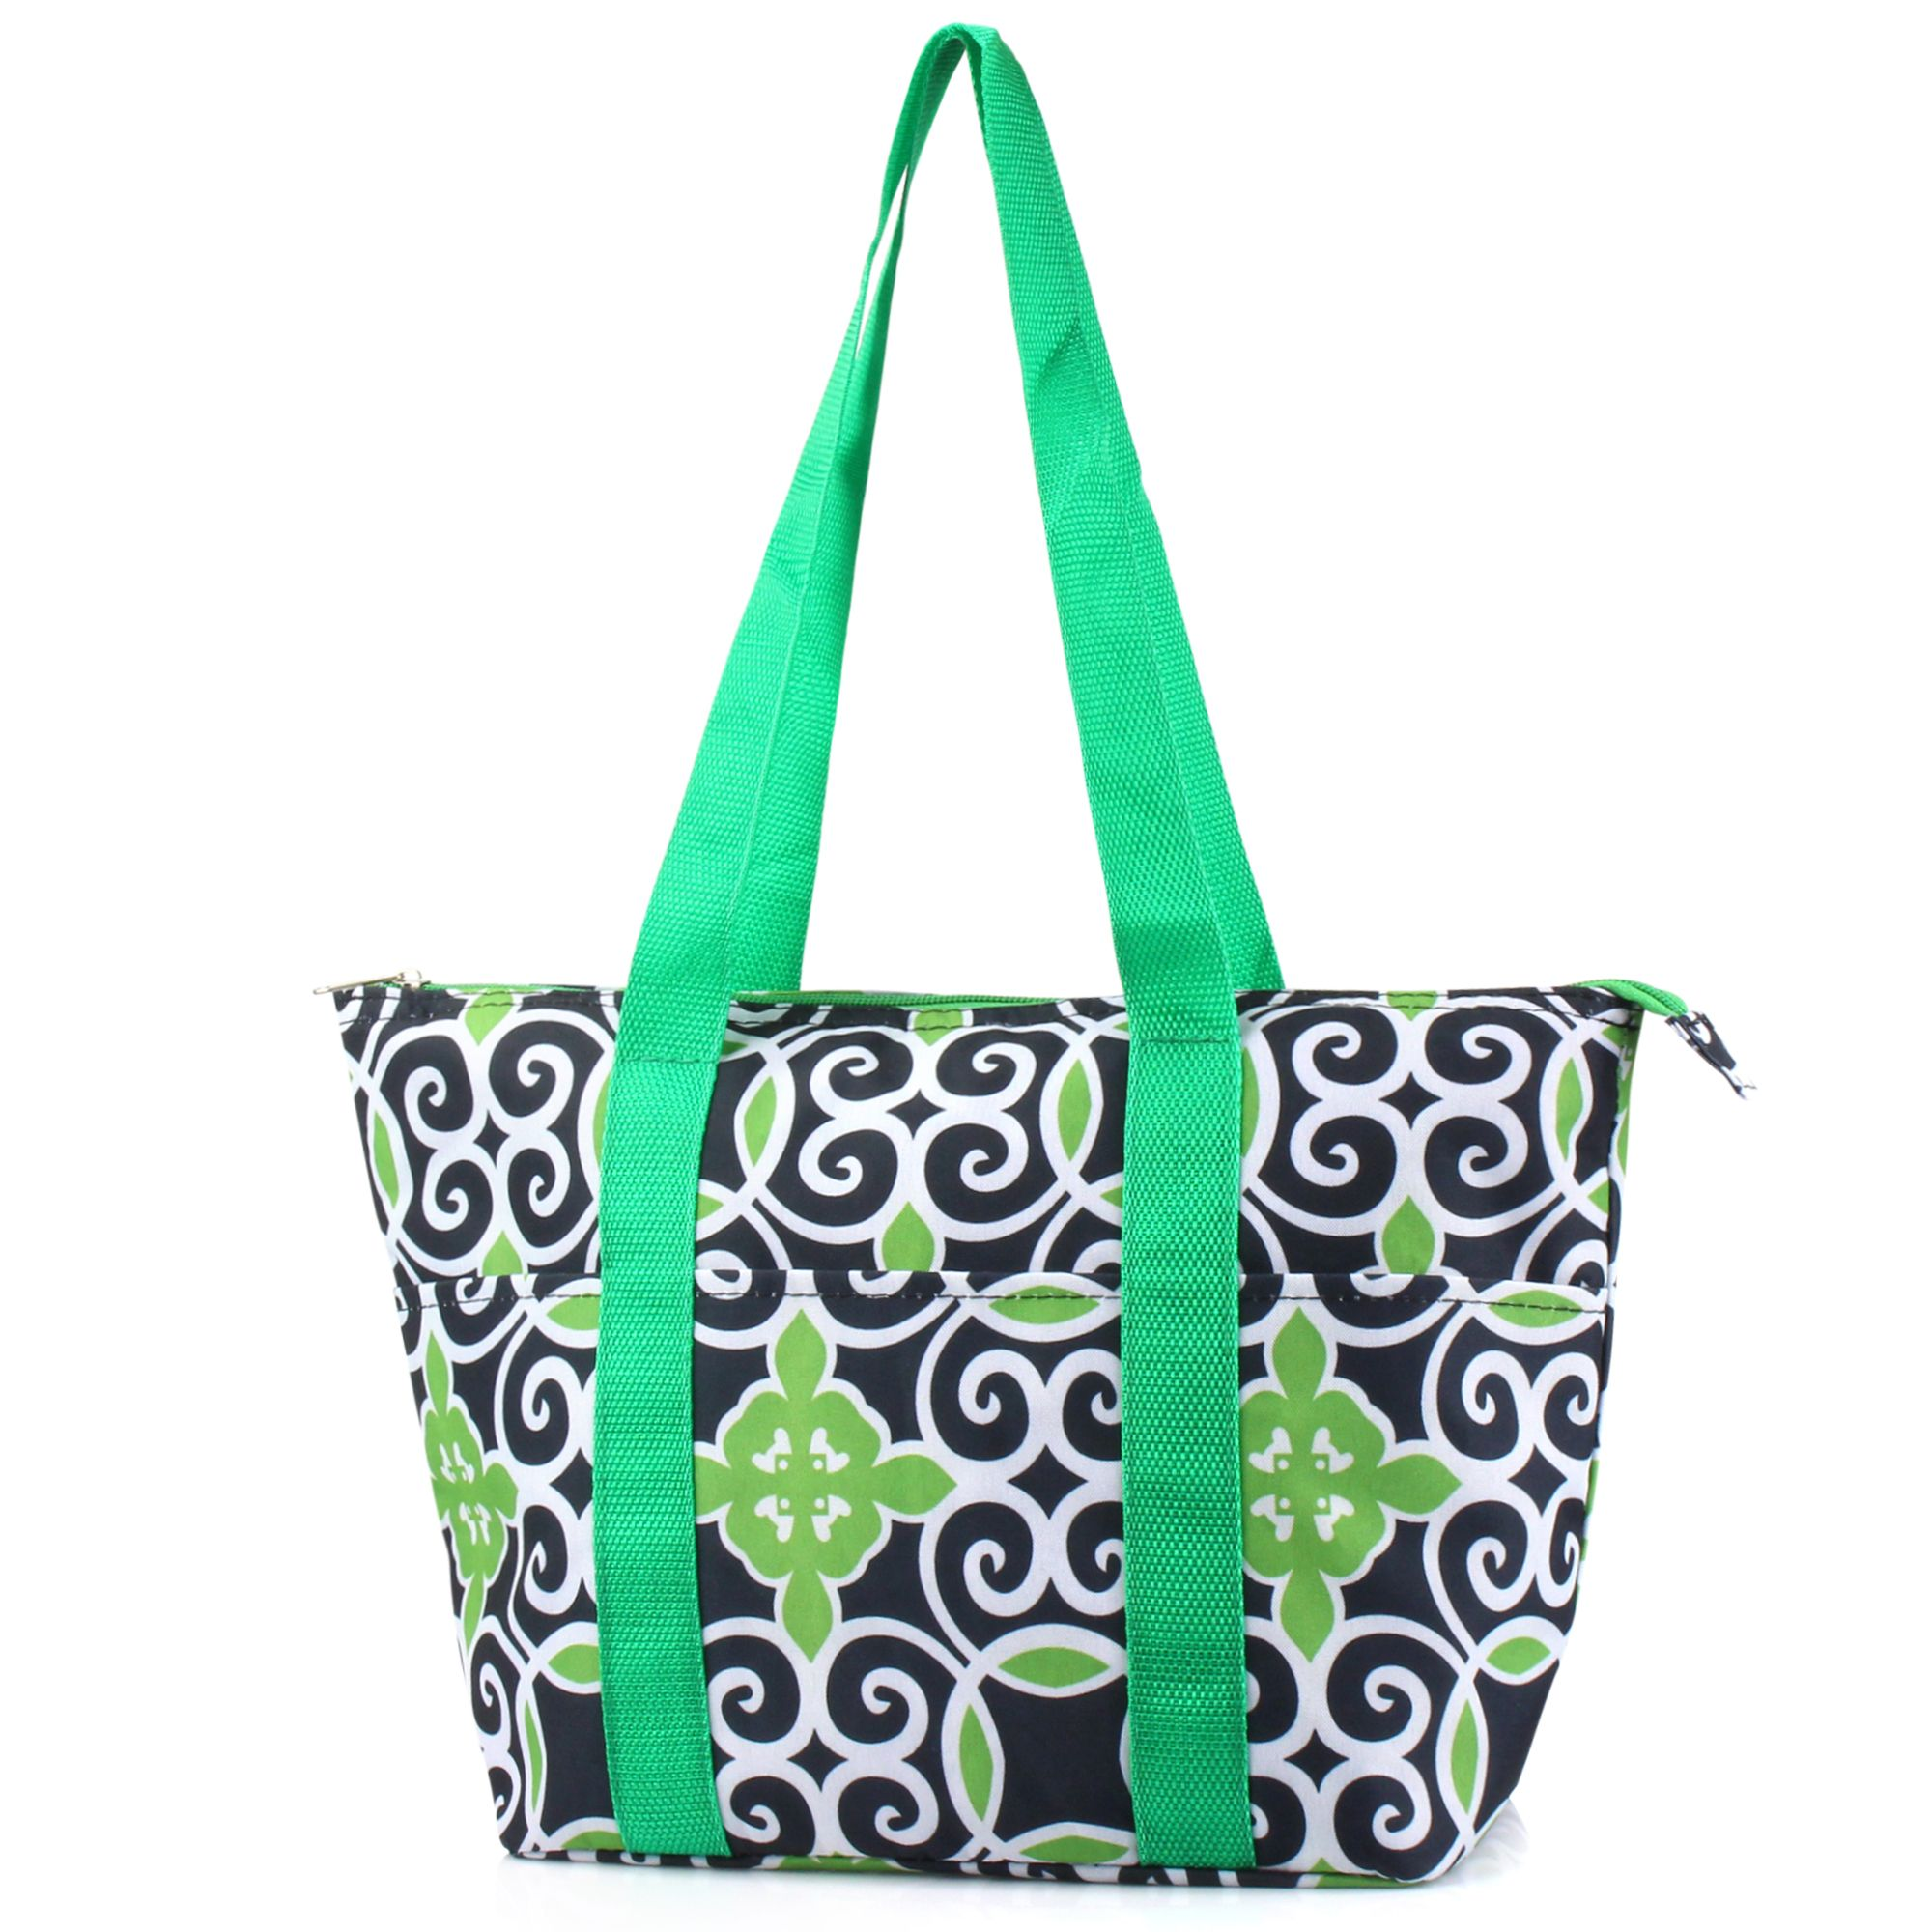 Zodaca Large Insulated Lunch Bag Cooler Picnic Travel Food Box Women Tote Carry Bags